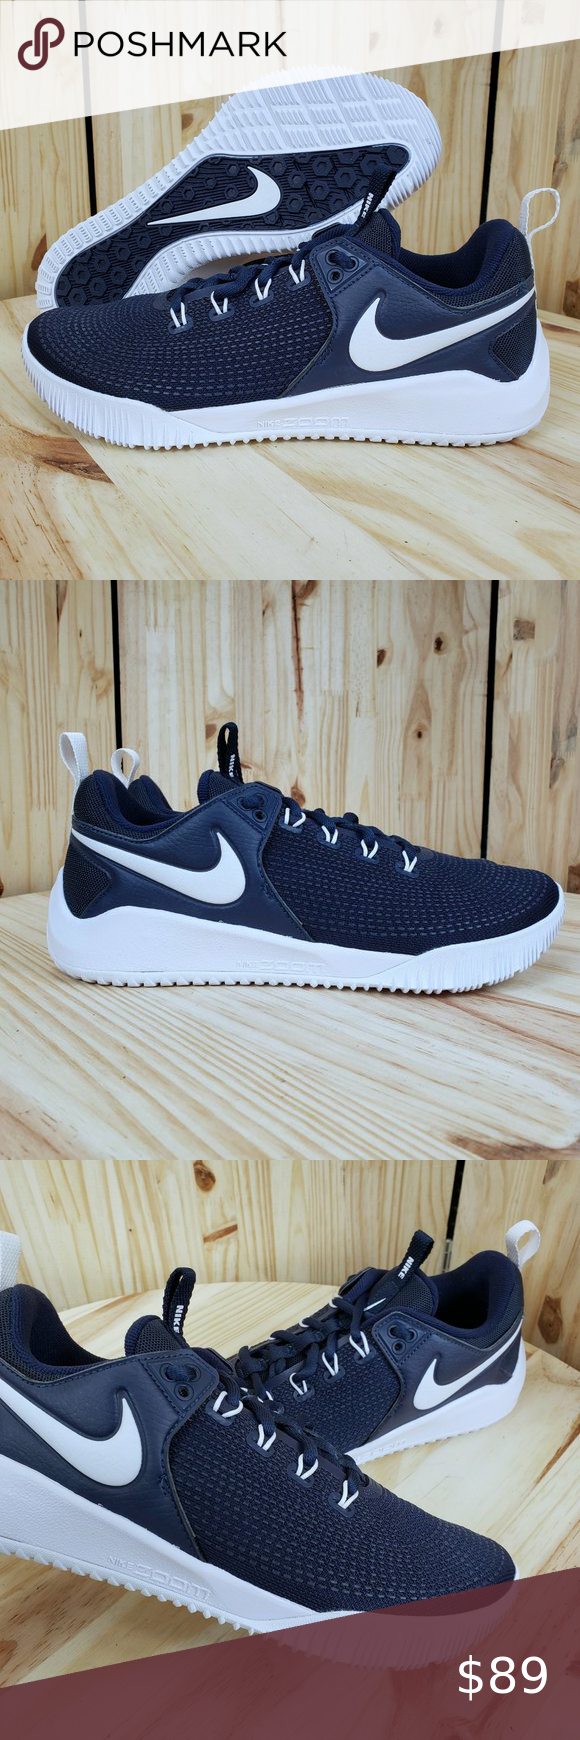 Nike Zoom Hyperace 2 Volleyball Shoes 1410 Nwt In 2020 Volleyball Shoes Nike Zoom Nike